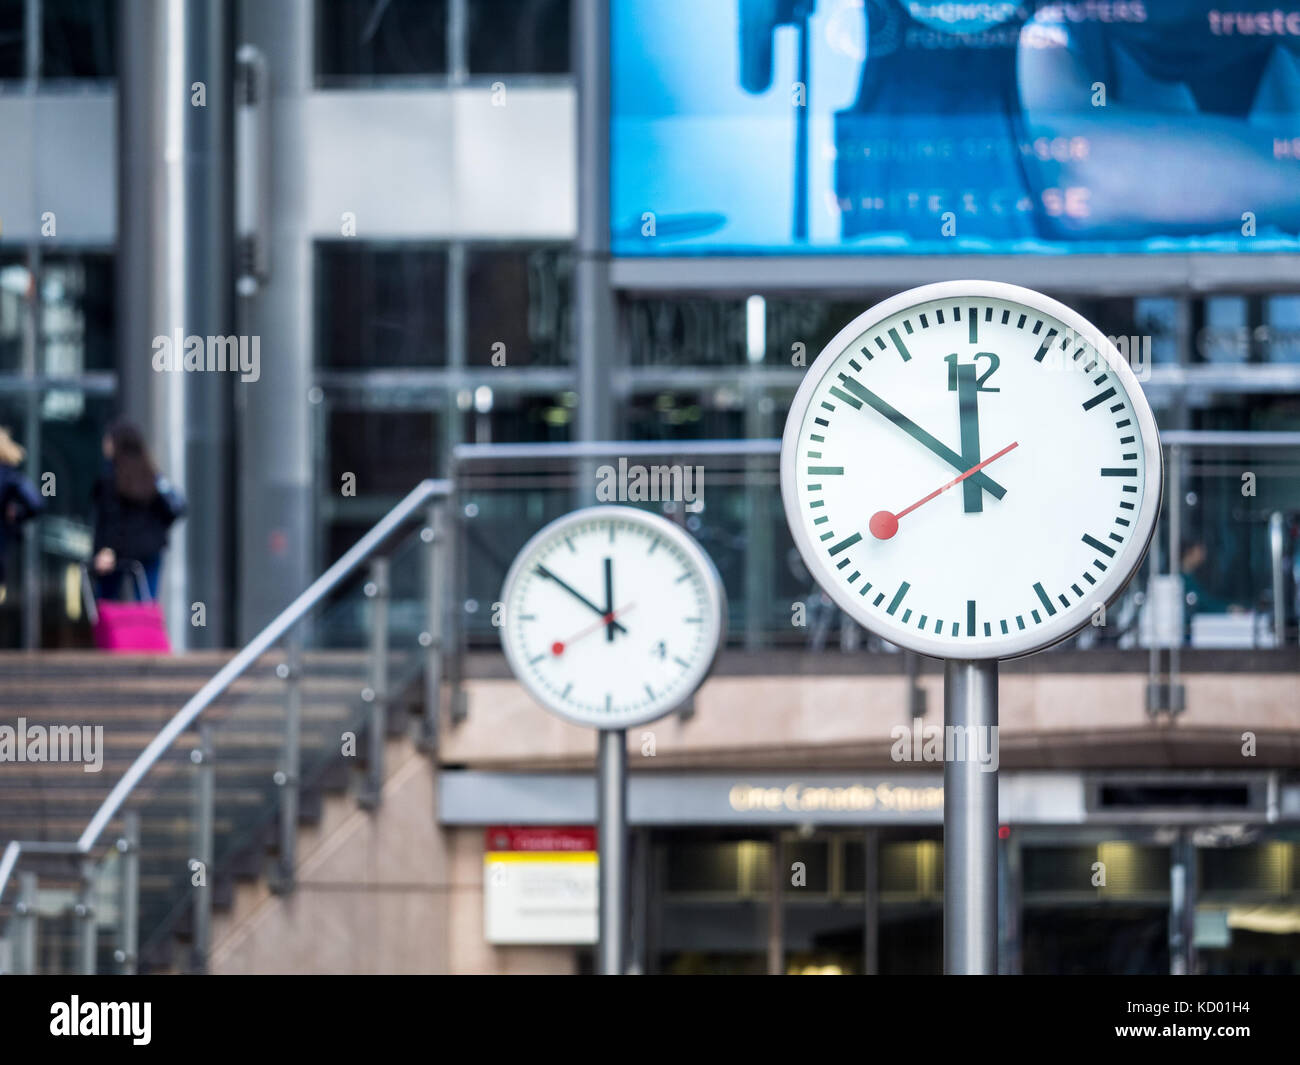 Clocks Canary Wharf Reuters Plaza - two of the Six Public Clocks artwork, by Konstantin Grcic, in Reuters Plaza - Stock Image